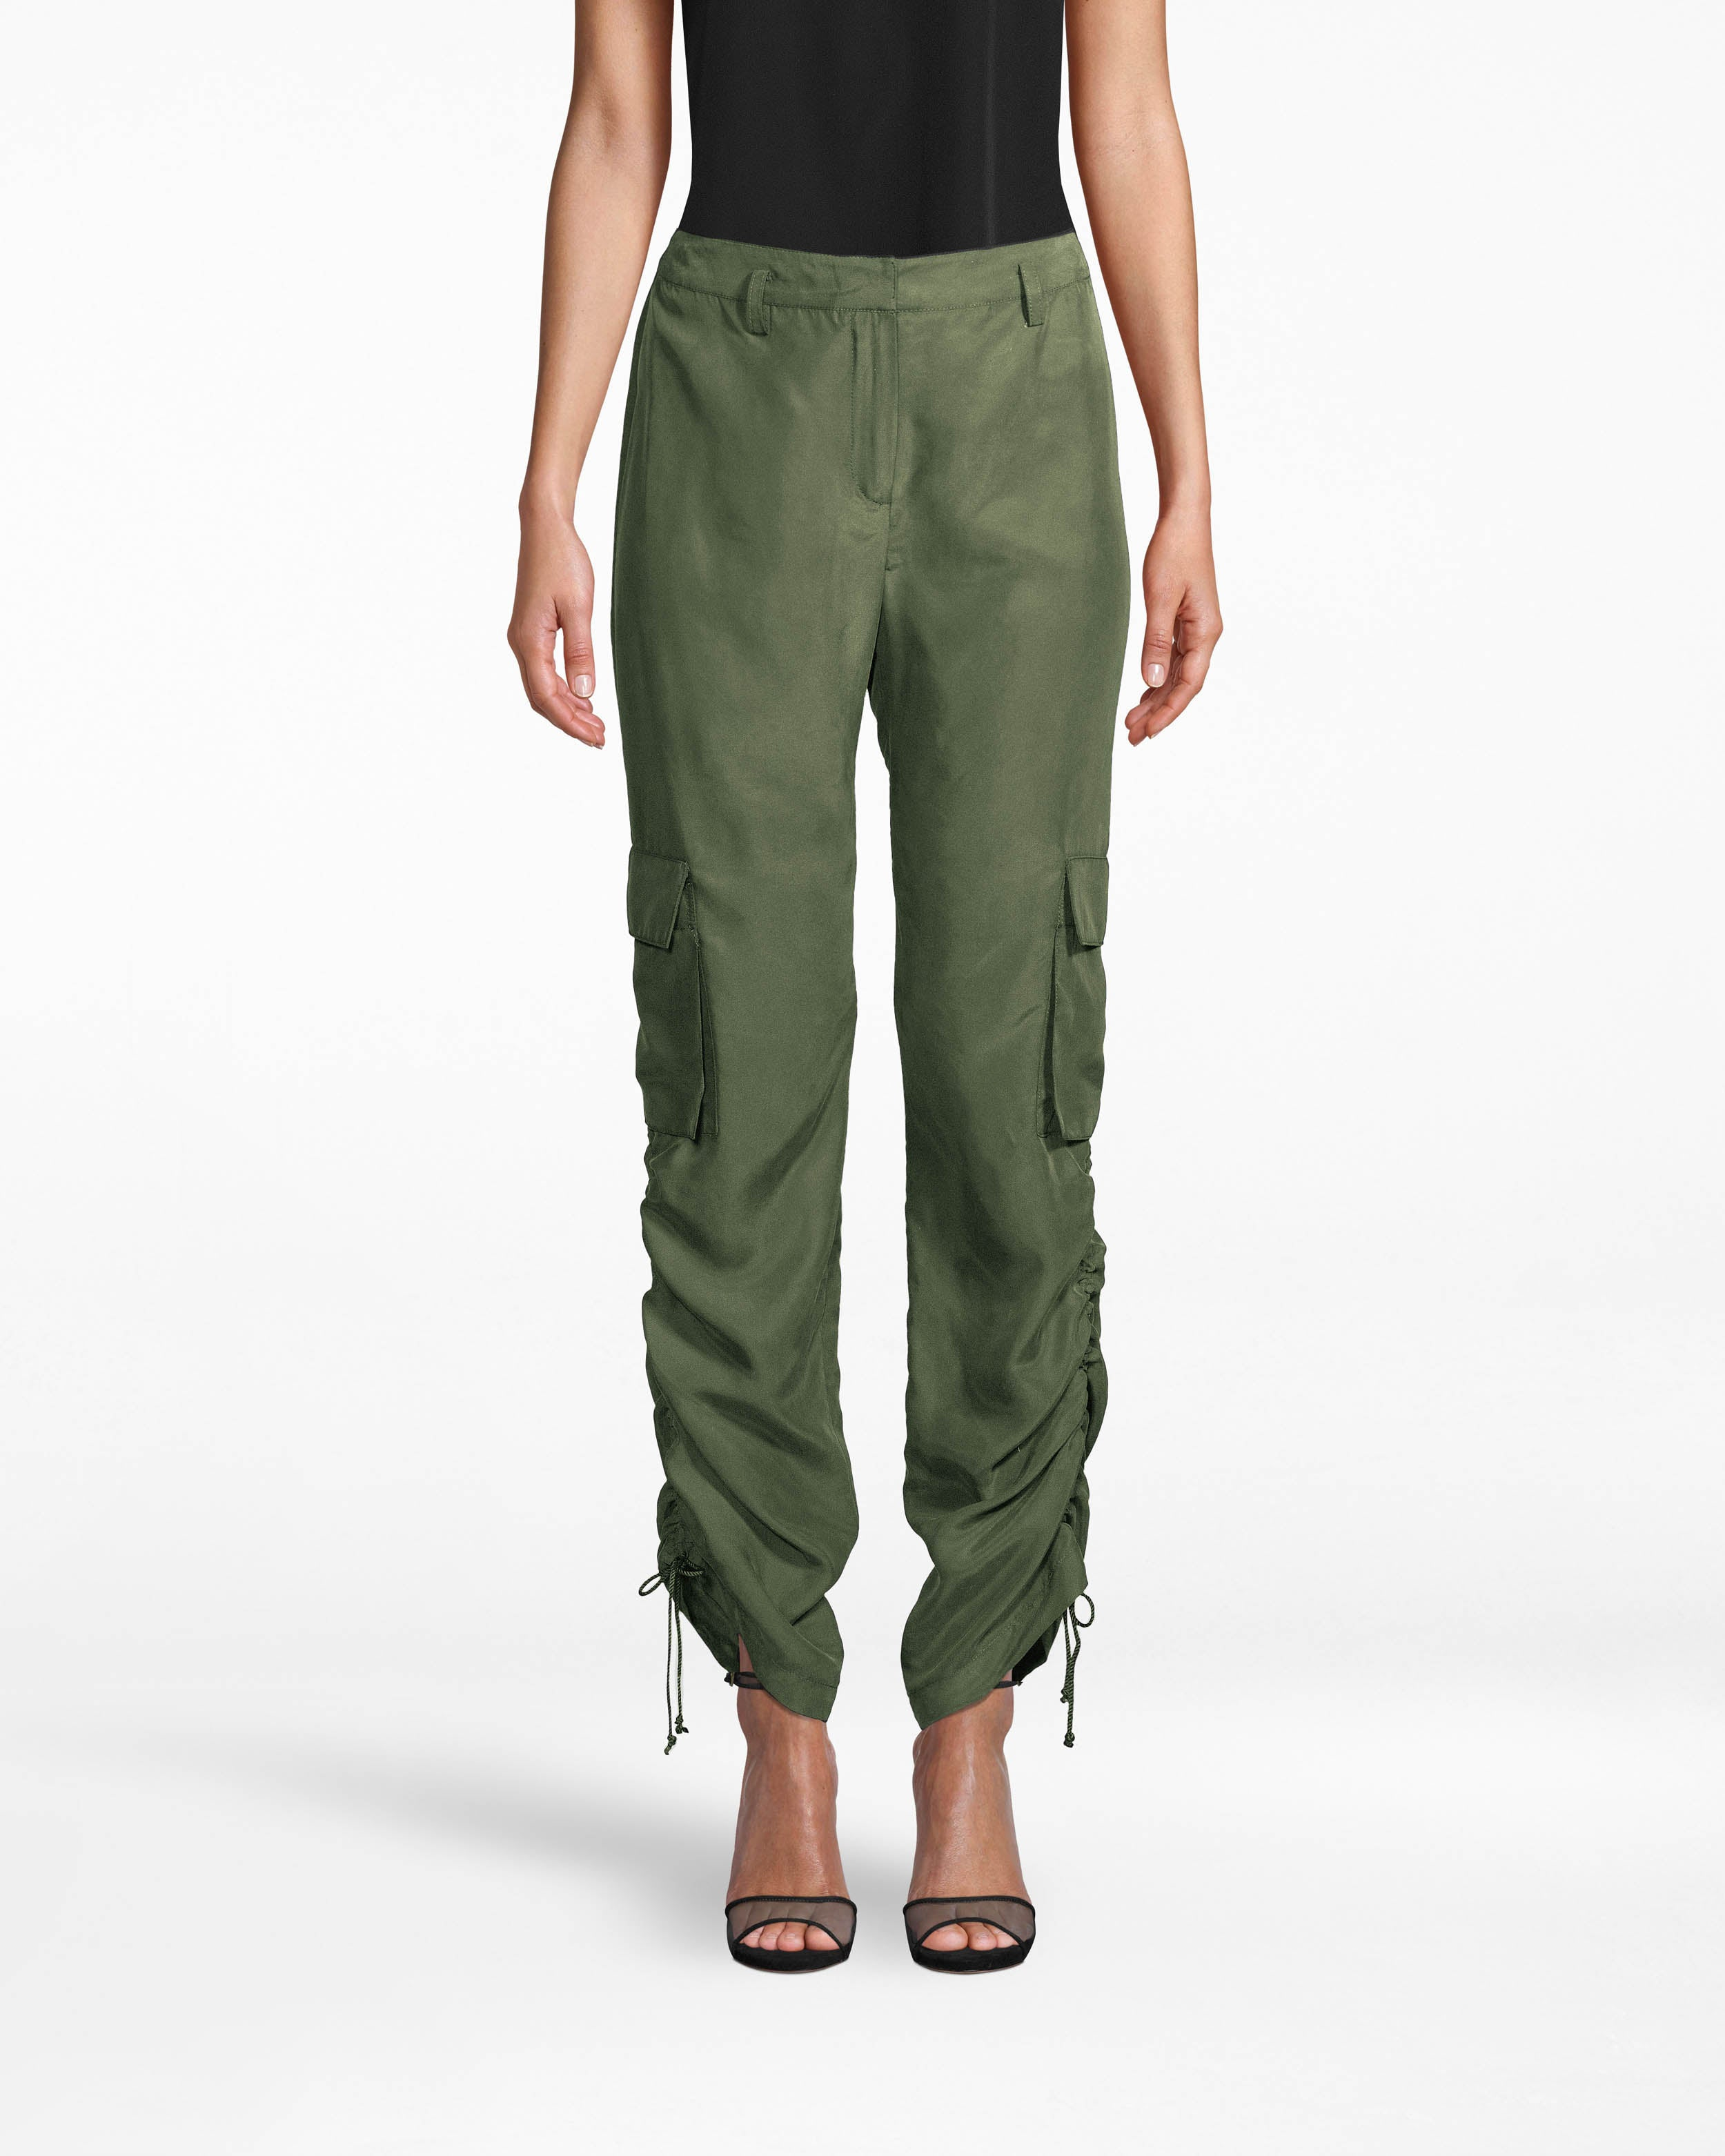 nicole miller washed habotai cargo pant in camouflage green | silk | size 0